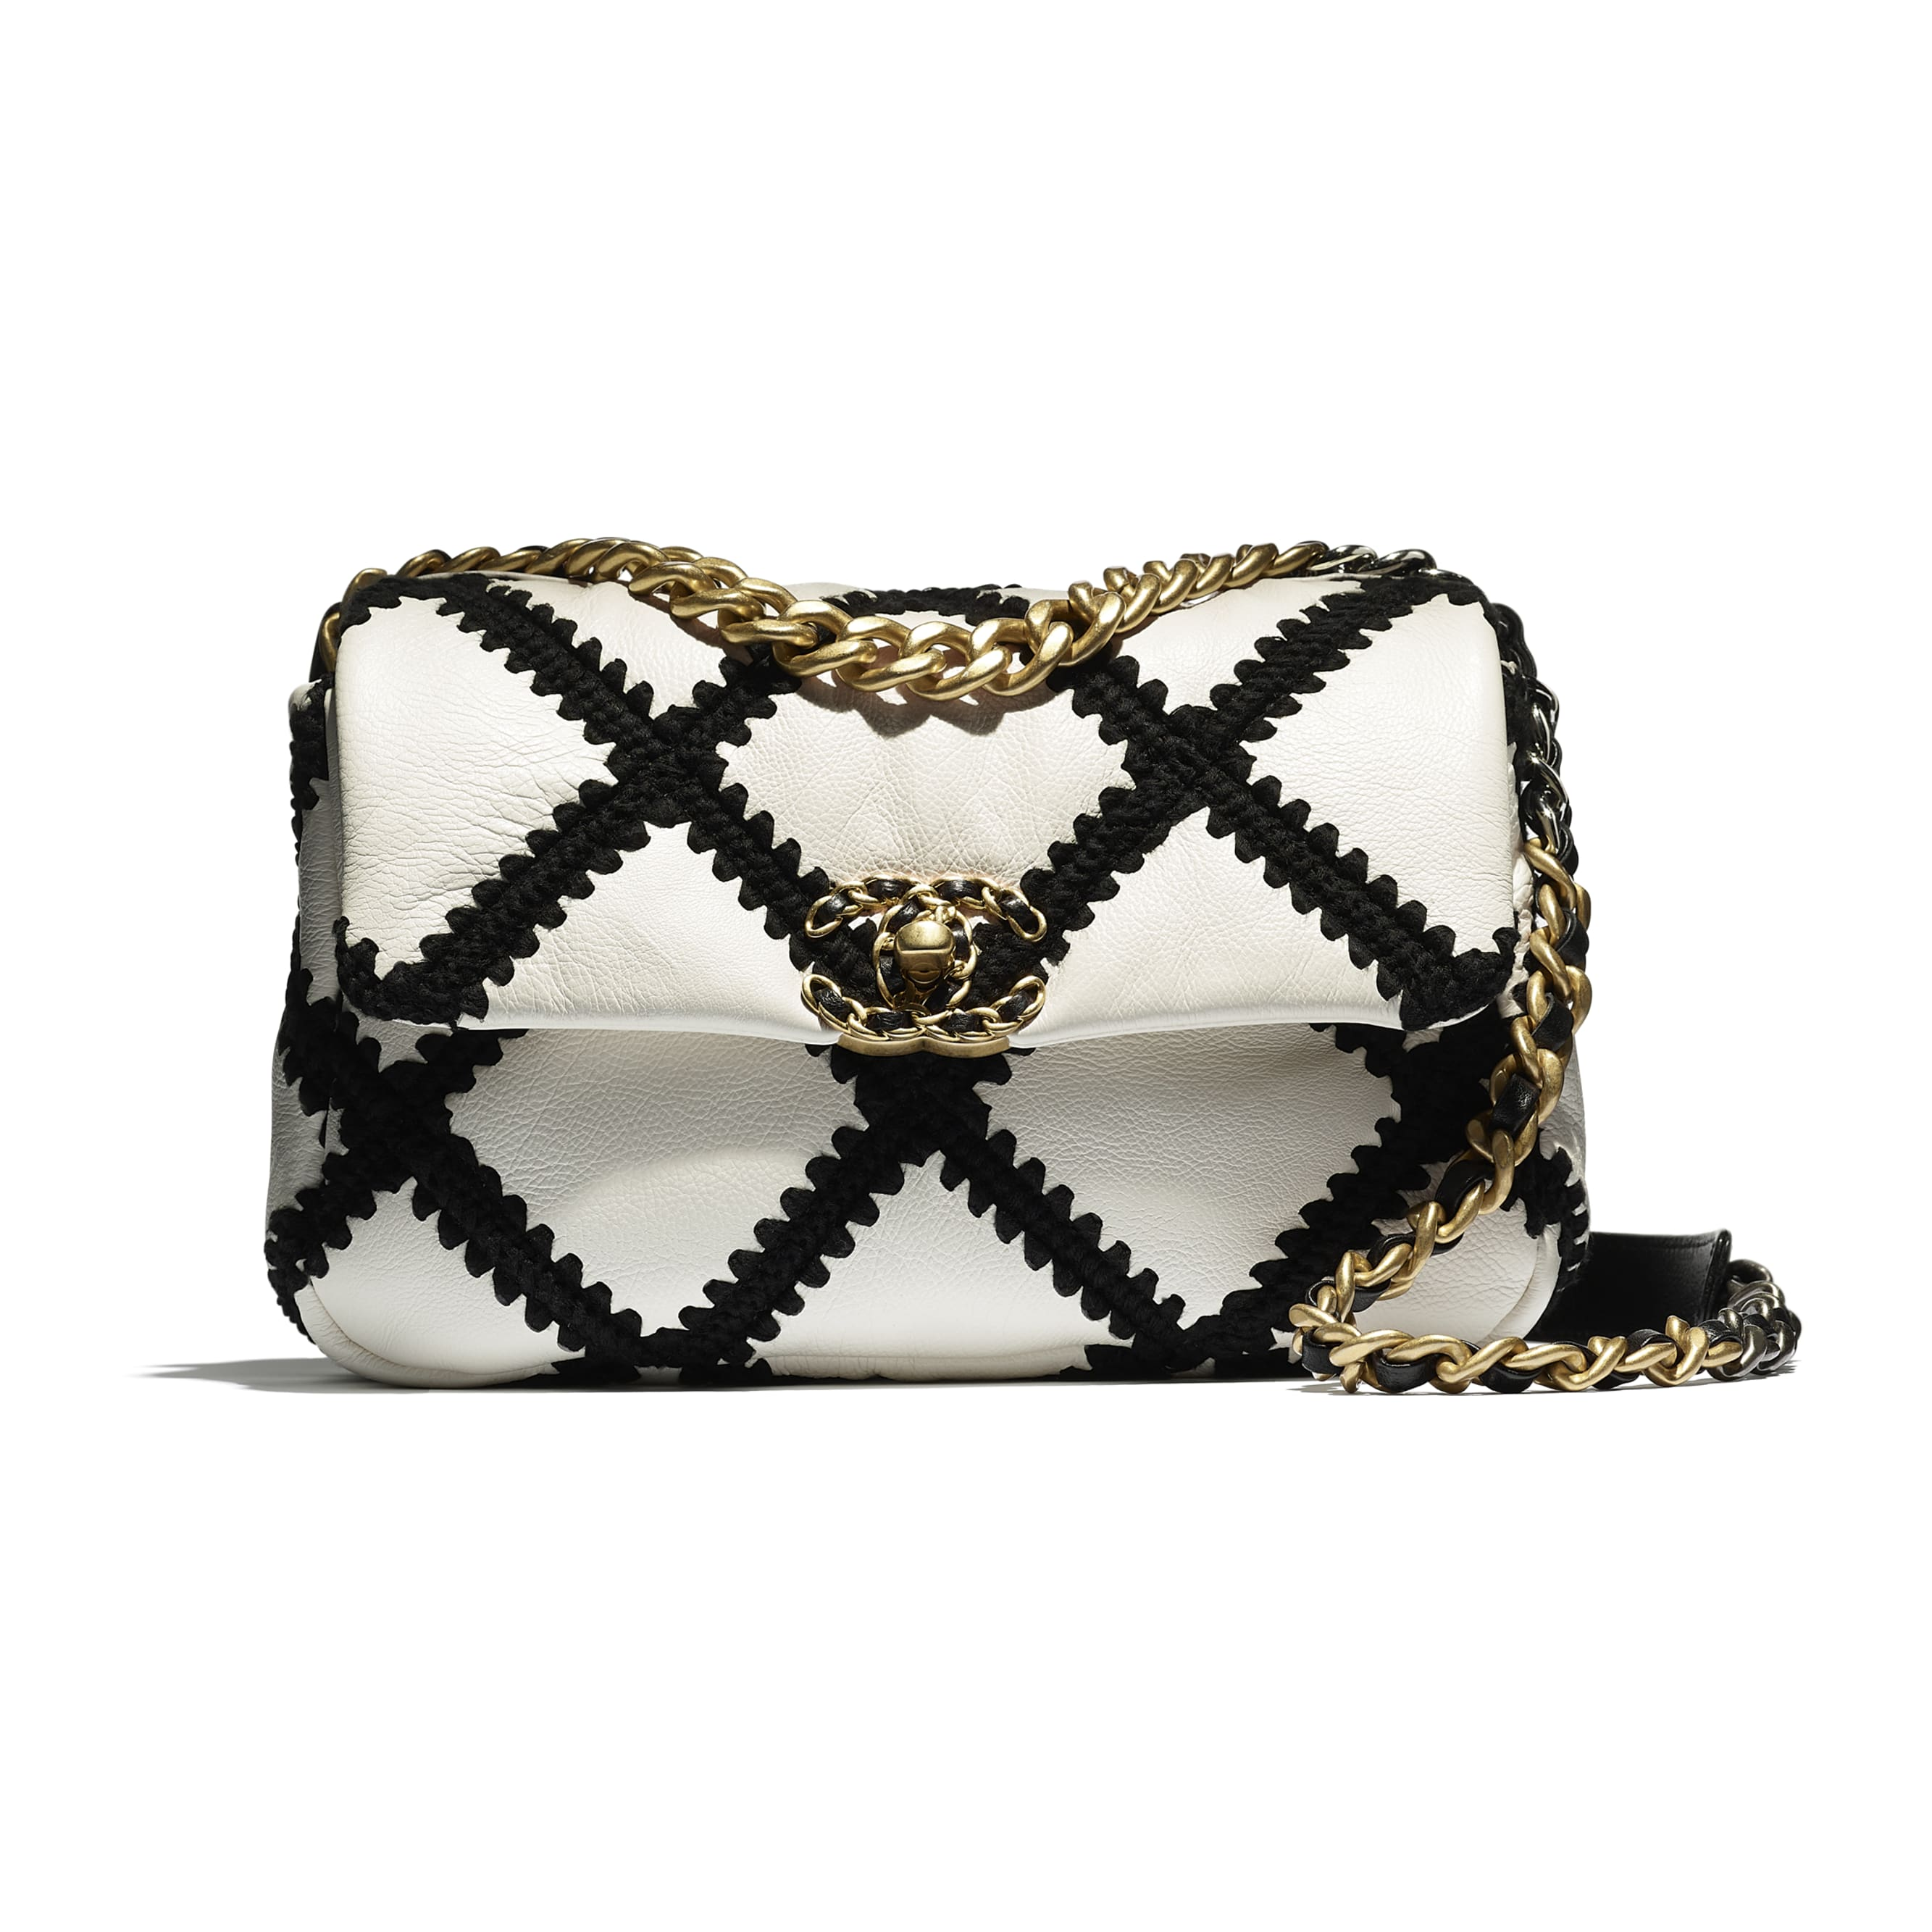 CHANEL 19 Flap Bag - White & Black - Calfskin, Crochet, Gold-Tone, Silver-Tone & Ruthenium-Finish Metal - CHANEL - Extra view - see standard sized version